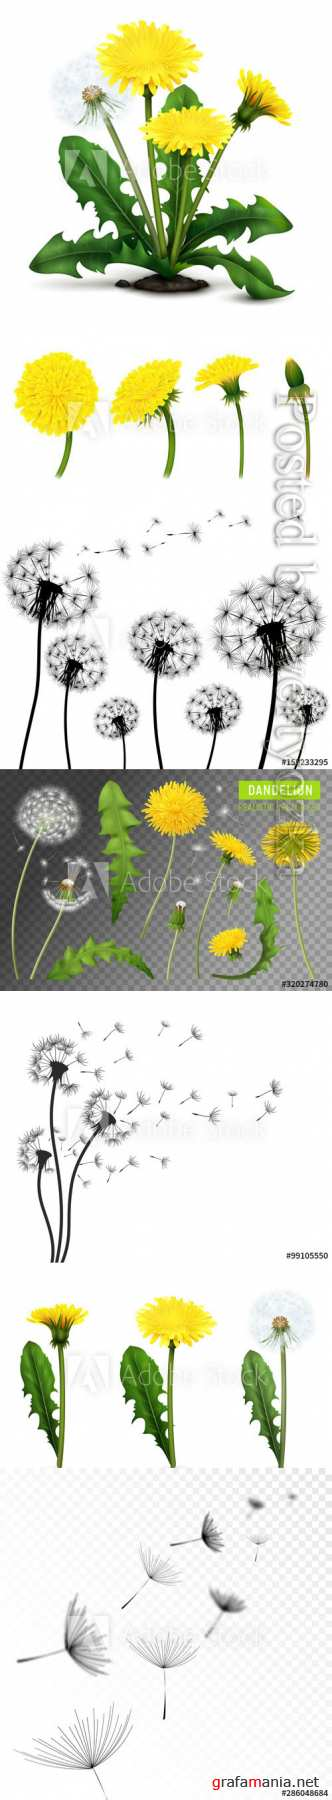 Dandelions vector illustrations